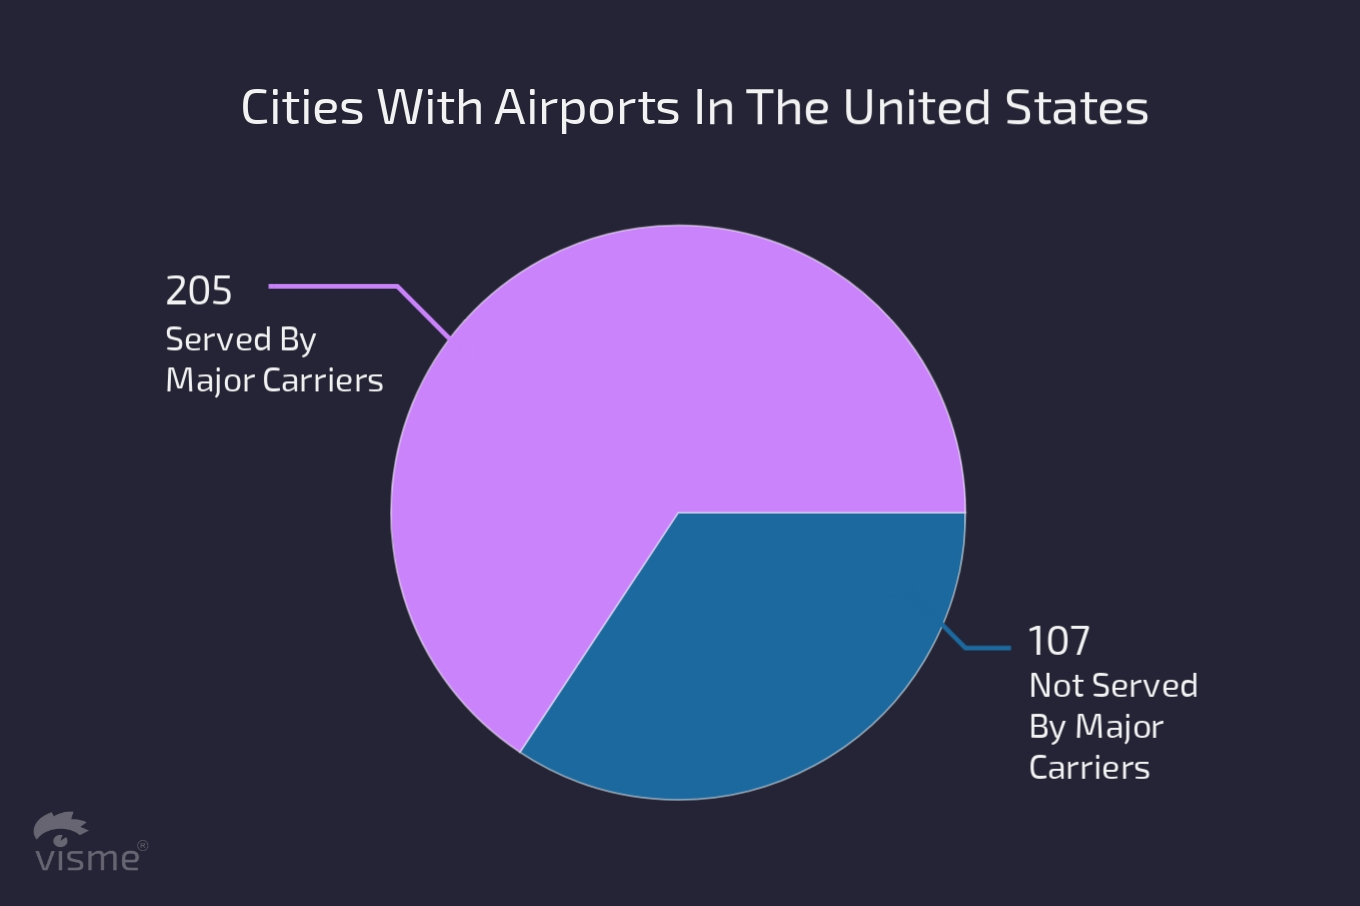 cities with airports in the united states